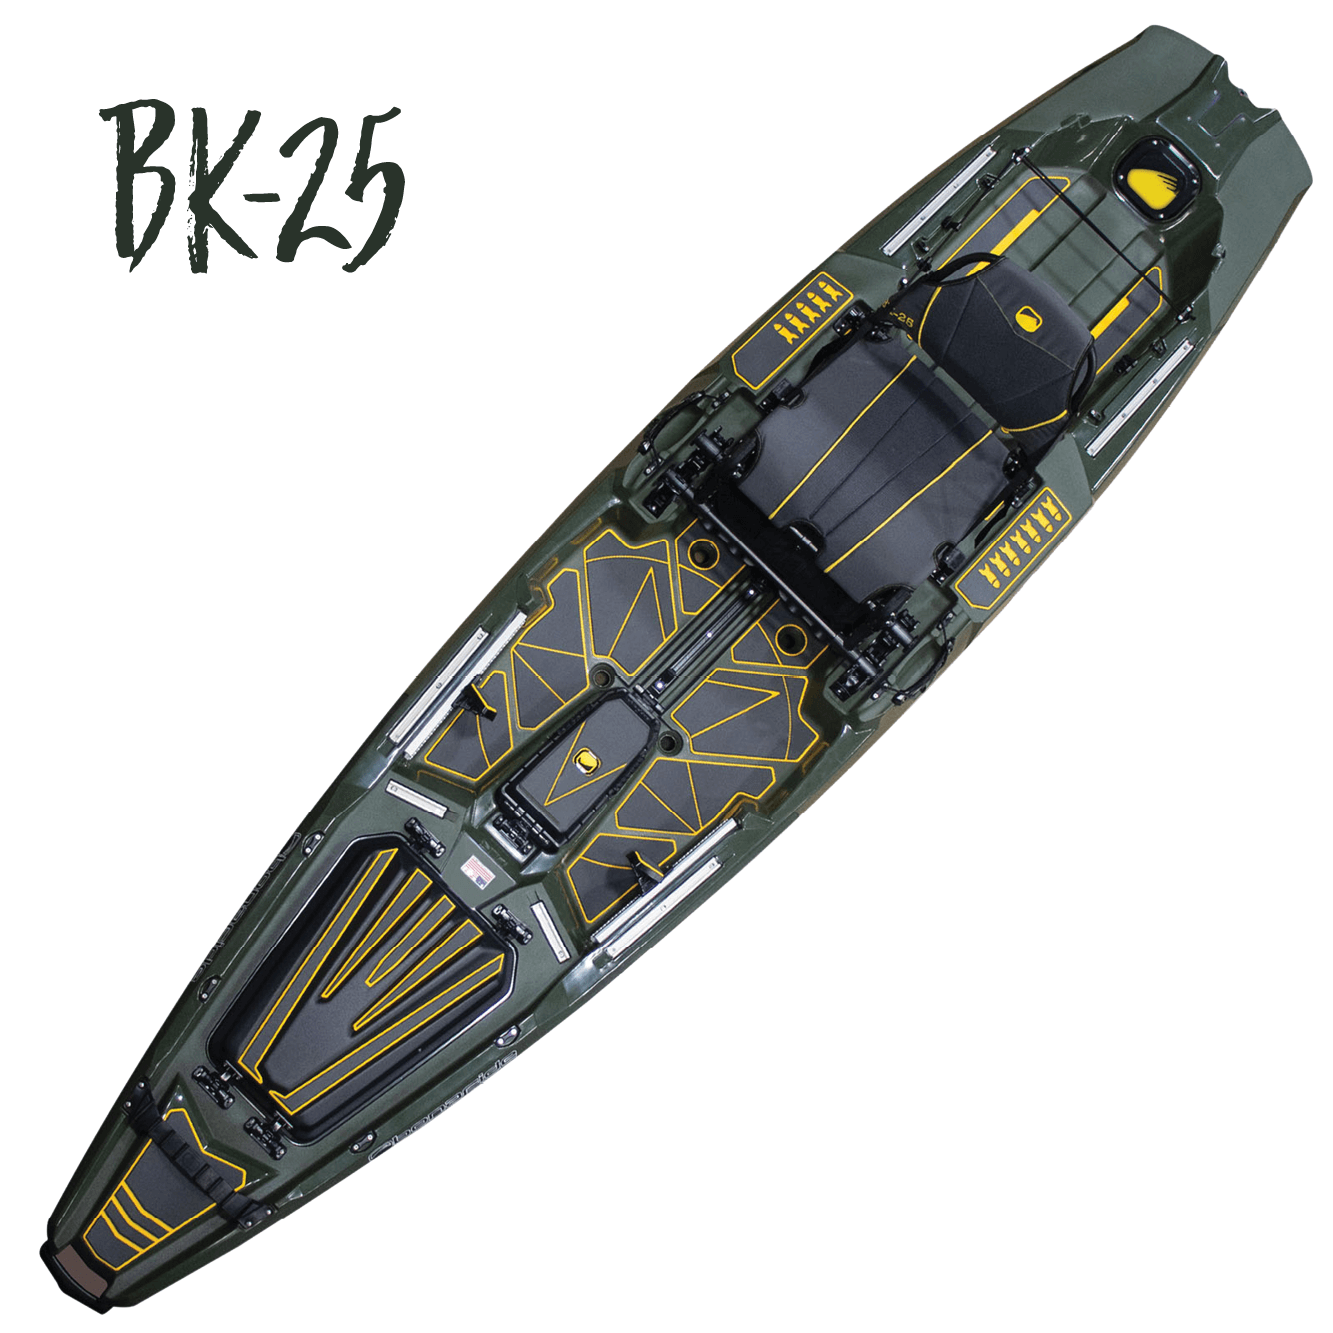 Almost Gone! Bonafide Limited Edition SS-127 Sit-On-Top Fishing Kayak